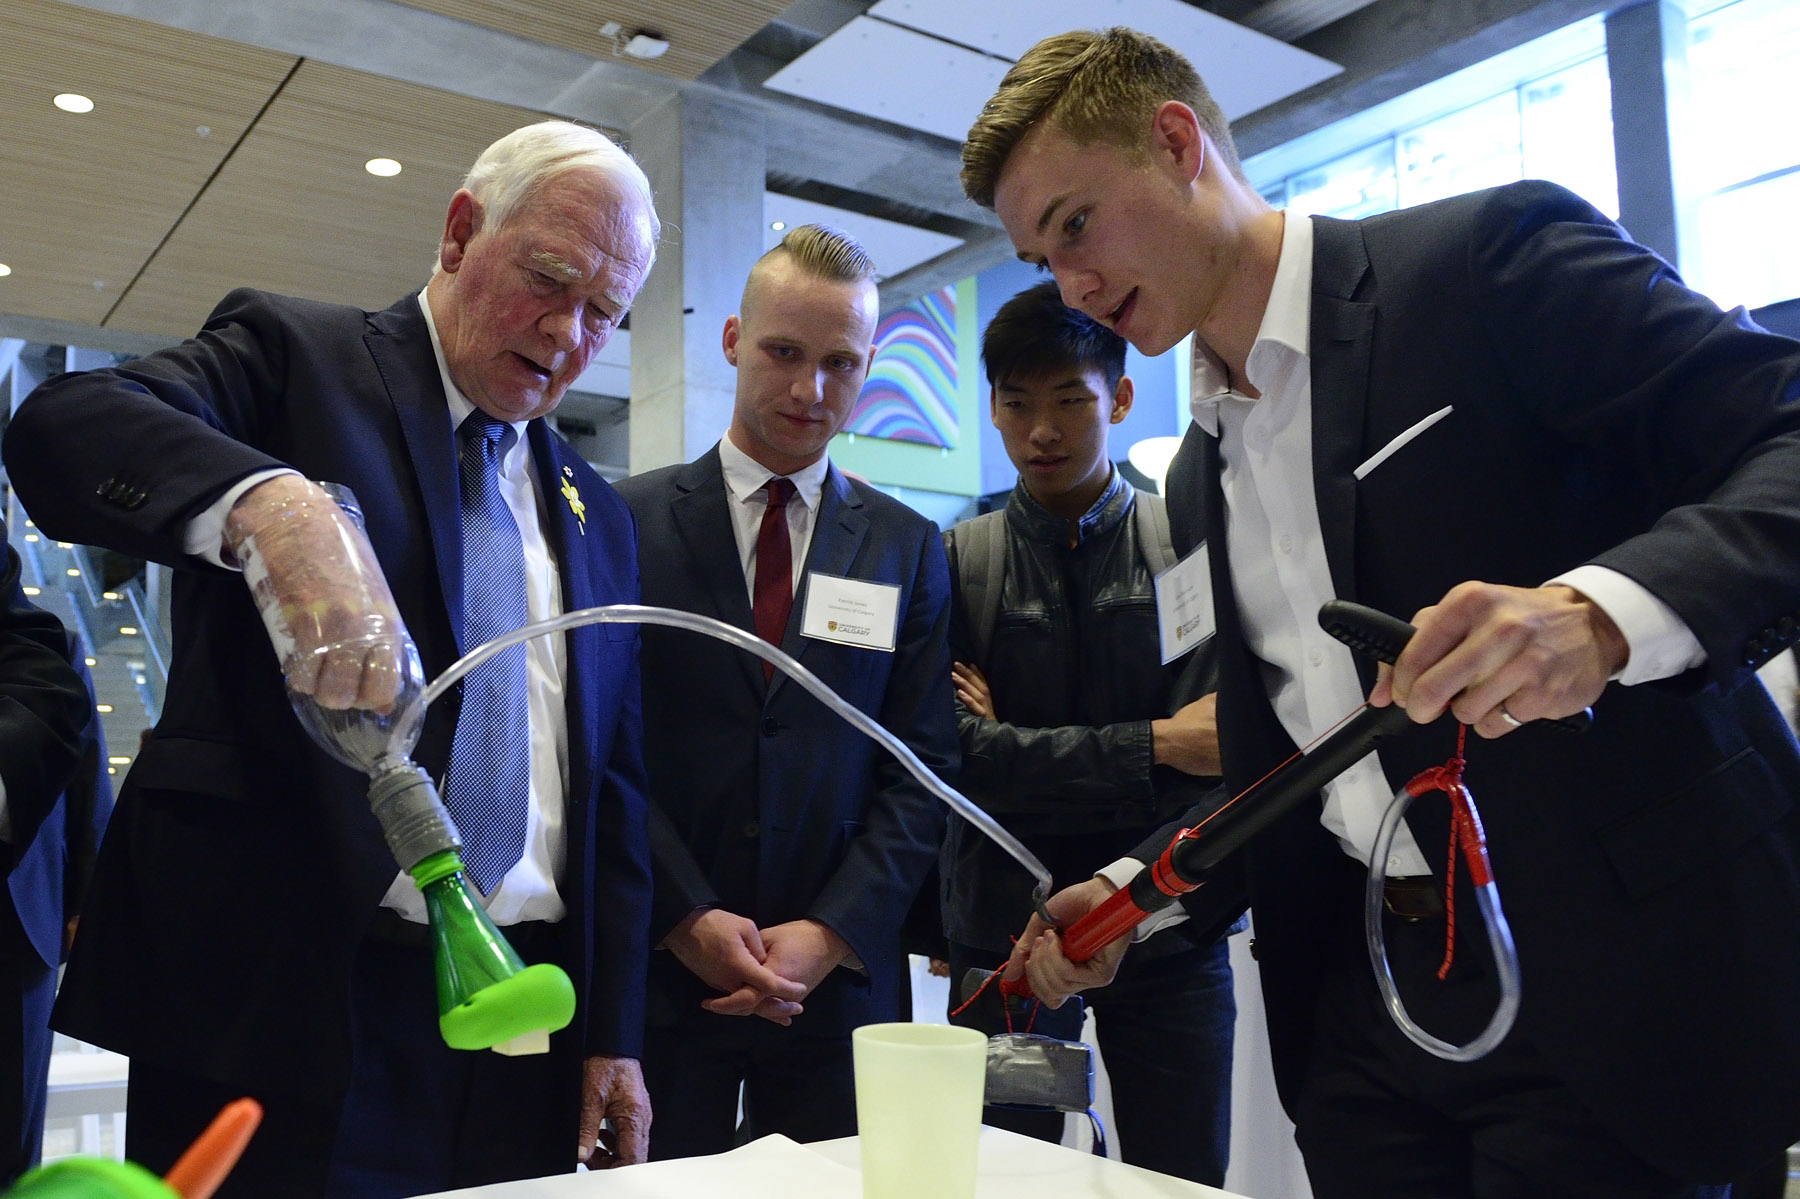 The Governor General and Mr. Jenkins also examined an innovation showcase of projects developed at, or in collaboration with, the University of Calgary.